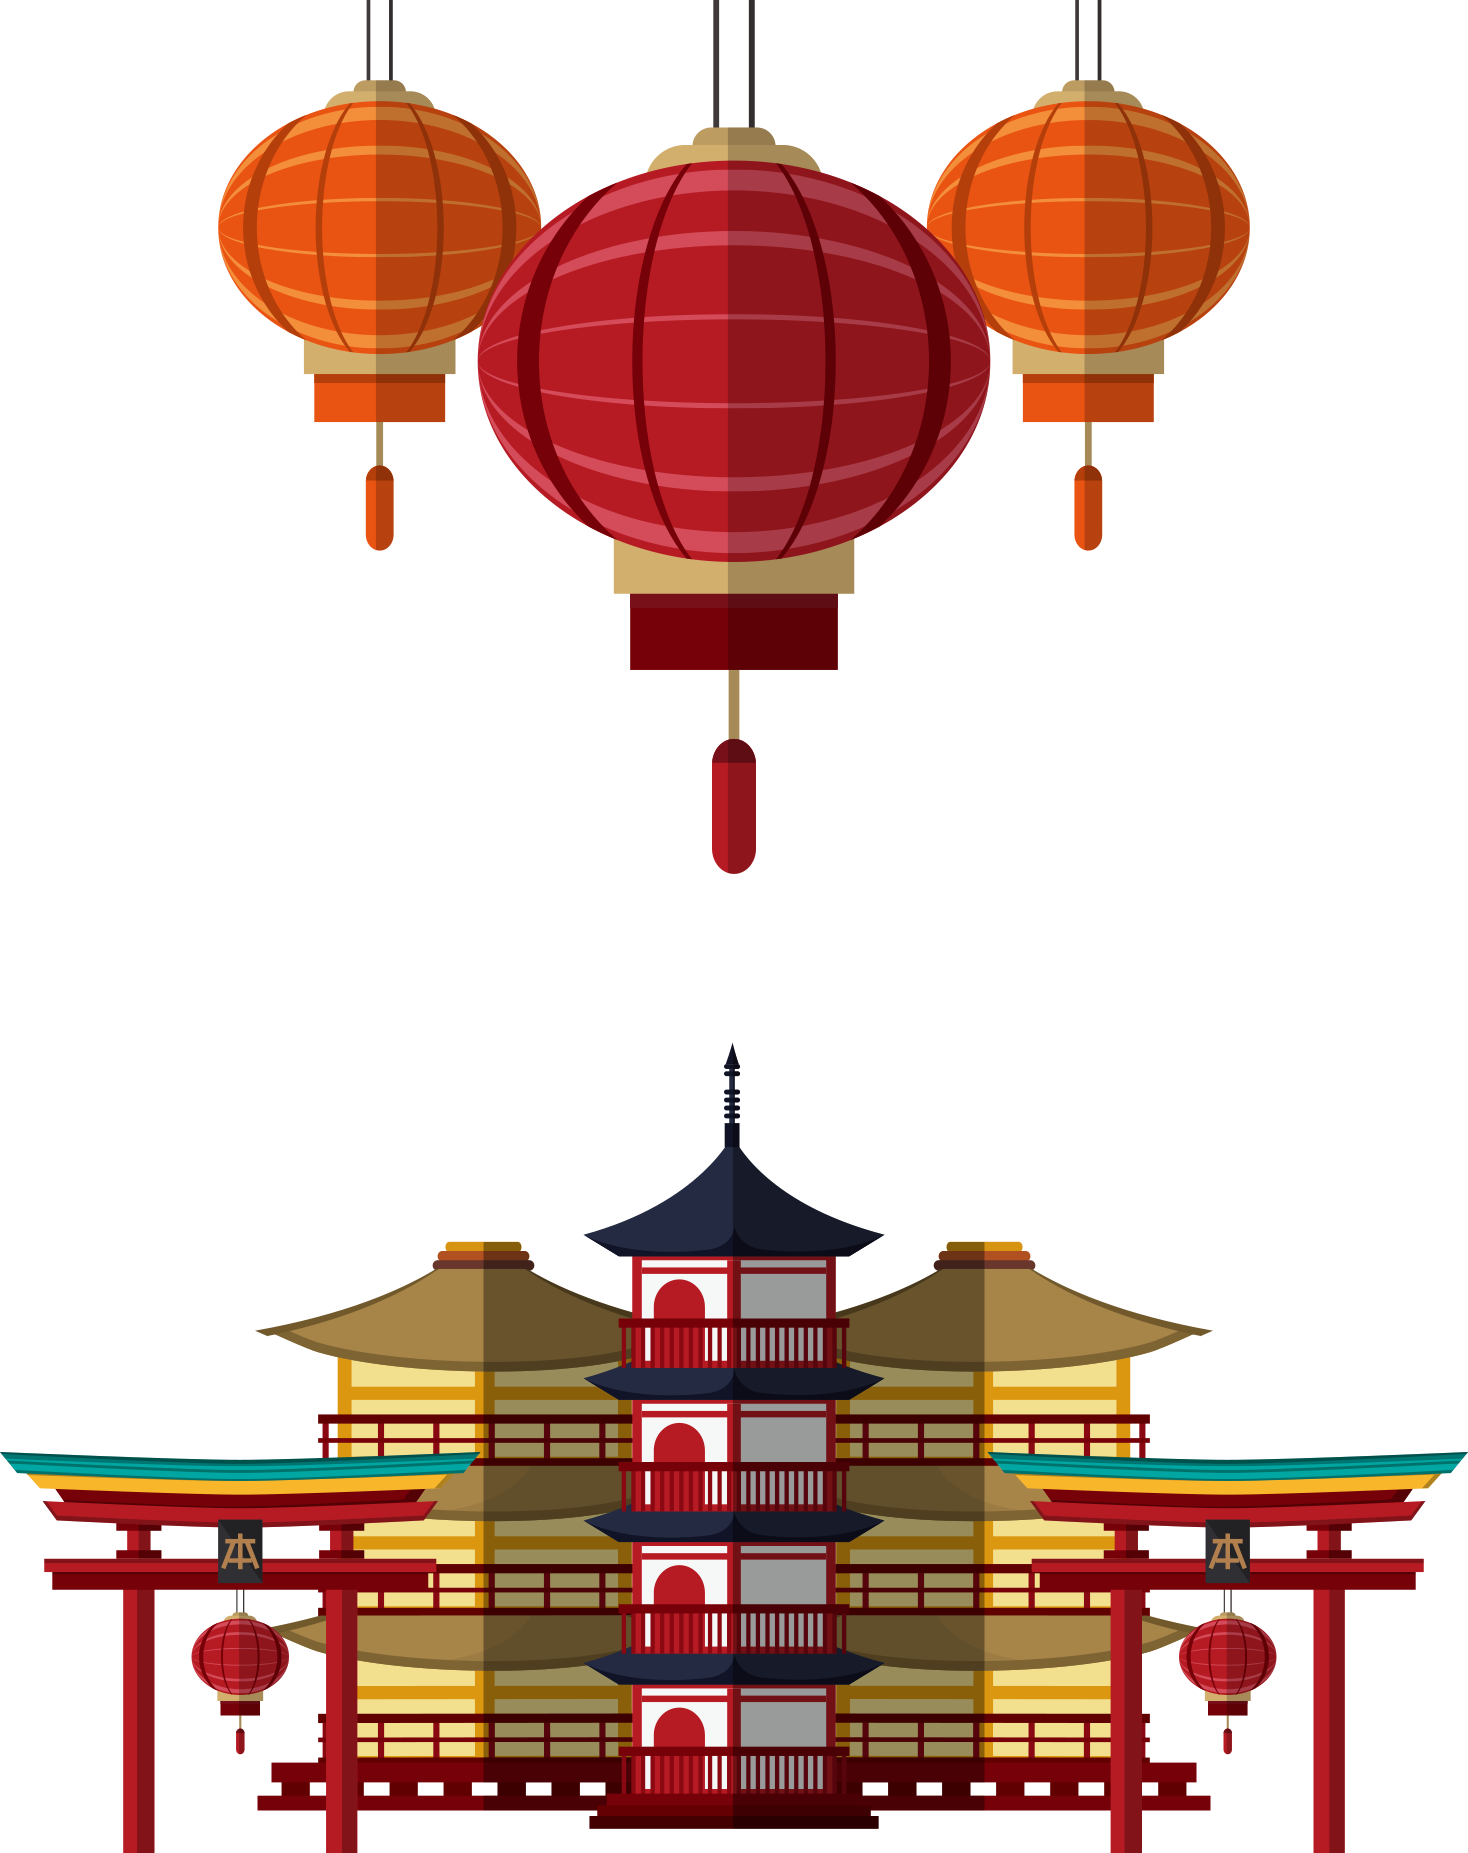 Japanese clipart red lantern. Japan drawing illustration architecture